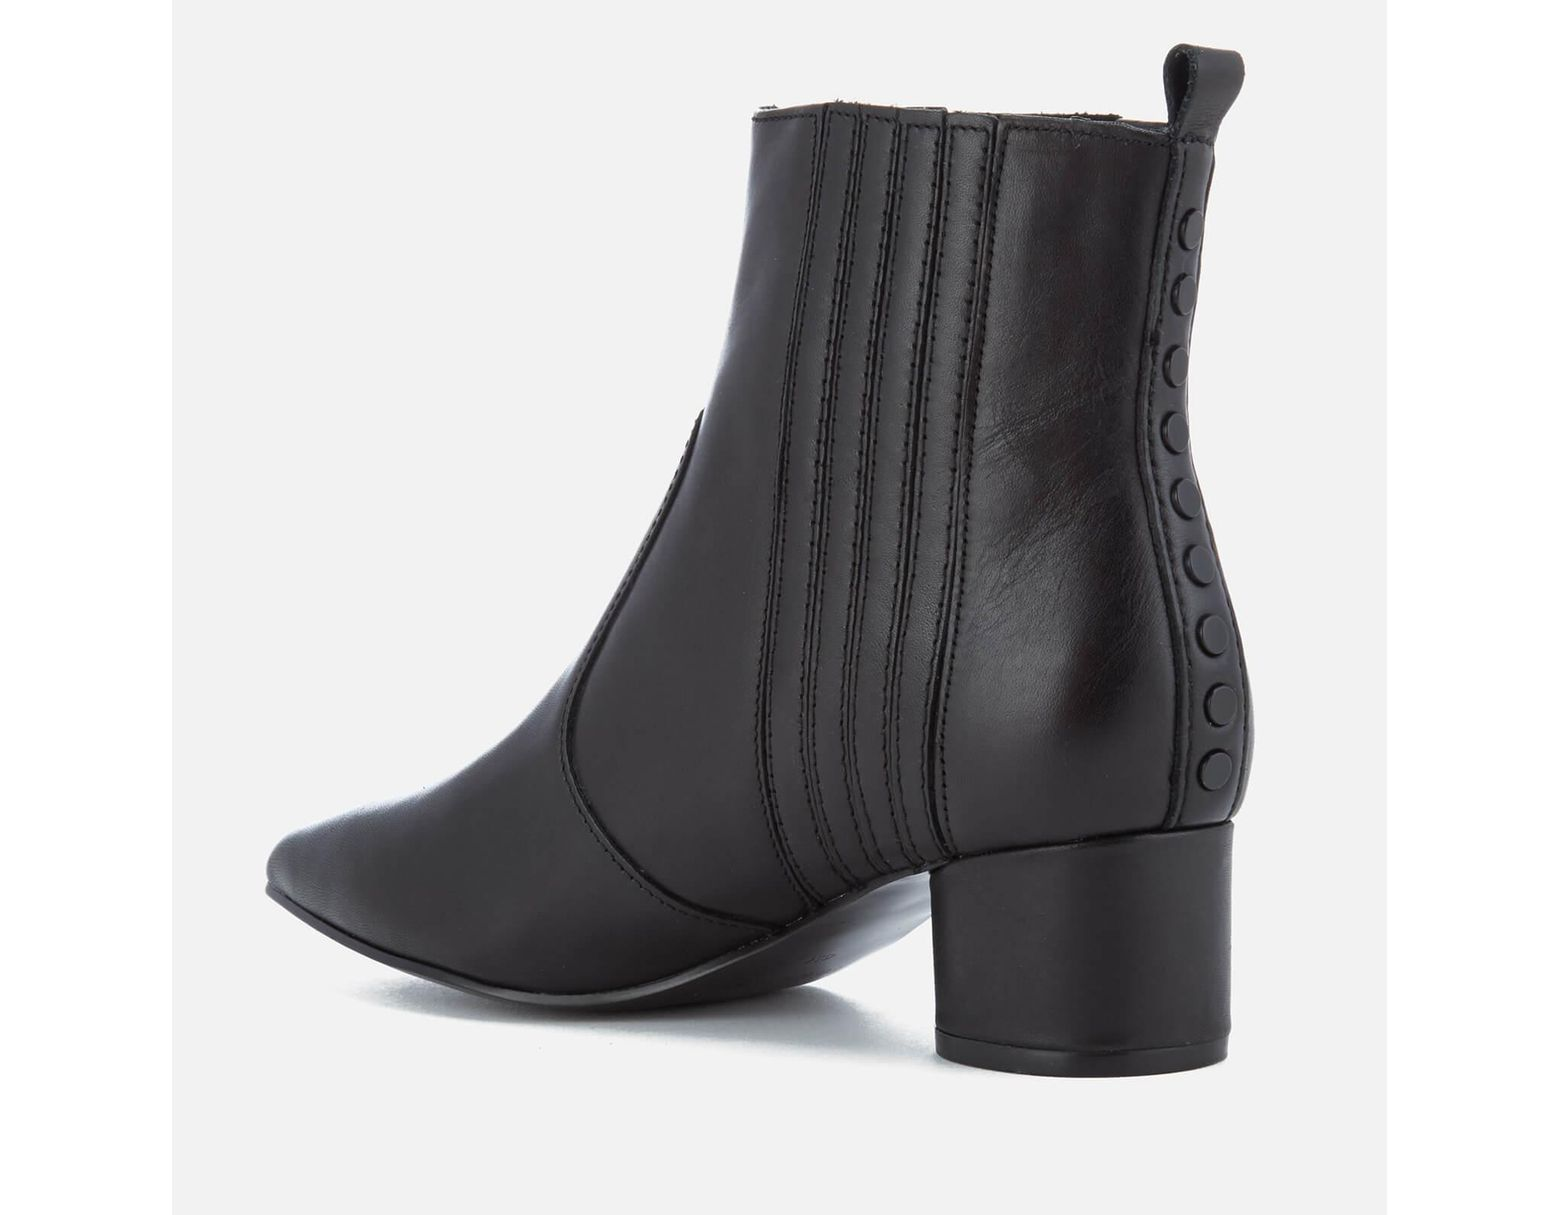 6ddccaa4237a Lyst - Kendall + Kylie Laila Leather Heeled Chelsea Boots in Black